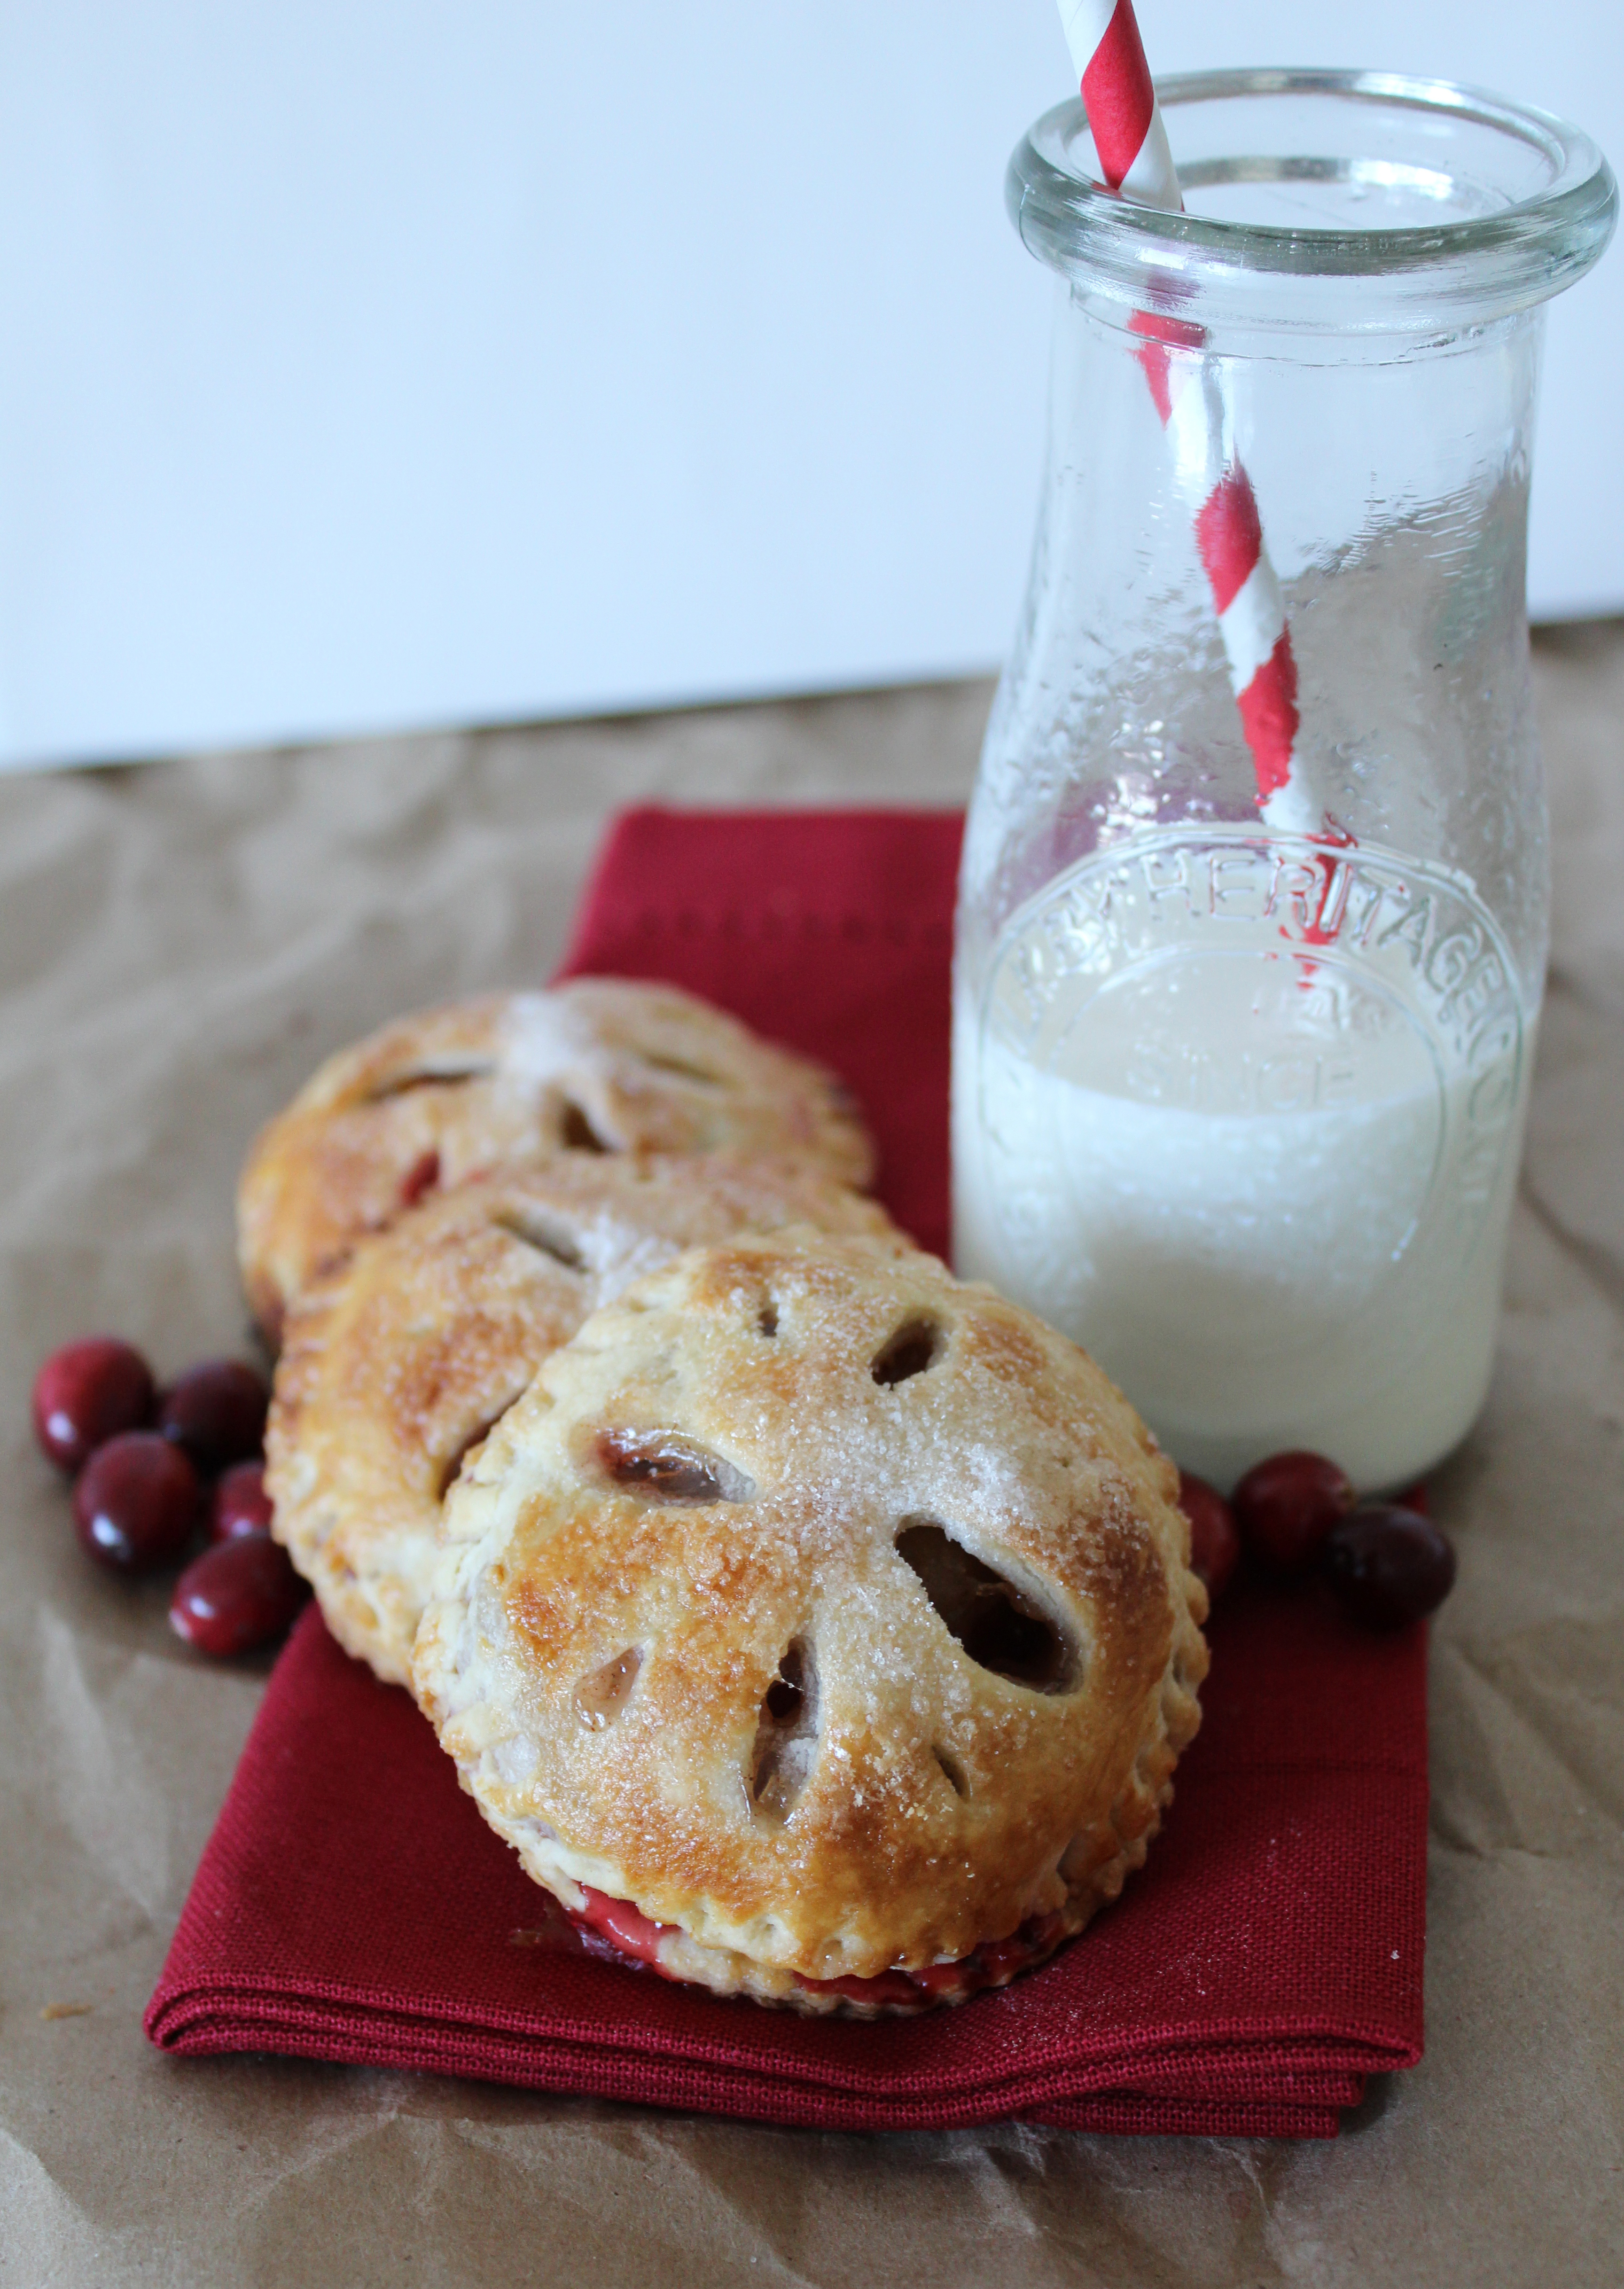 ... cranberry hand pies. Yes, another apple recipe, but I couldn't help